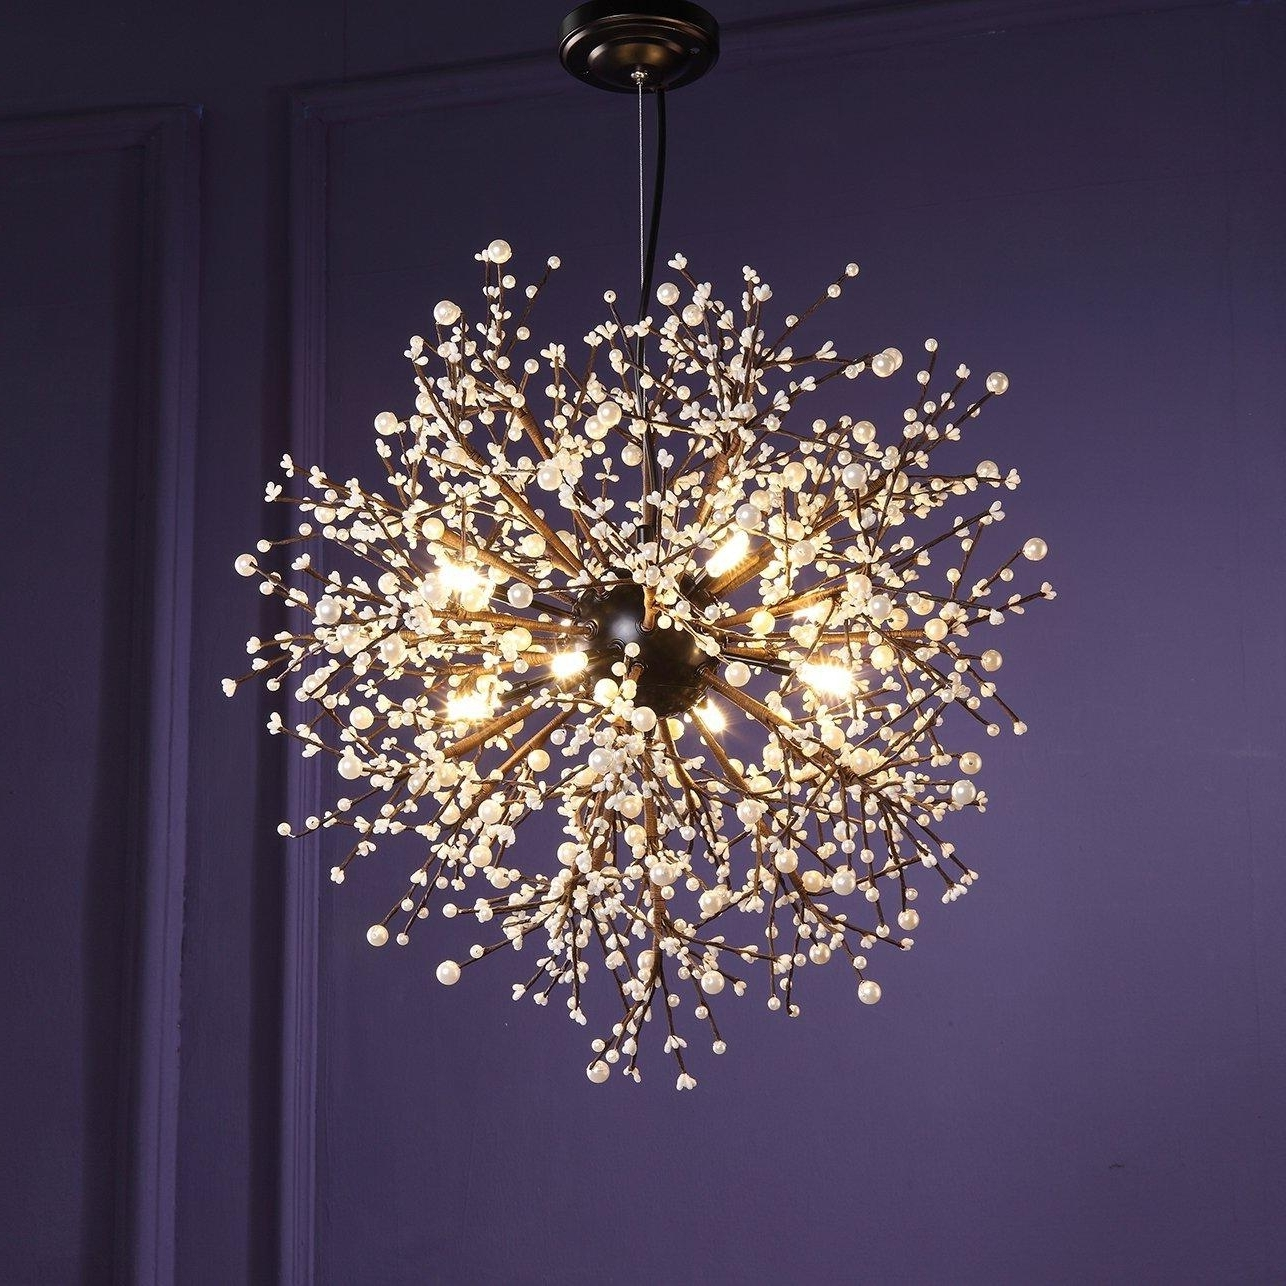 Modern Chandeliers Firework Led Vintage Wrought Iron Chandelier For Popular Ultra Modern Chandeliers (View 10 of 20)